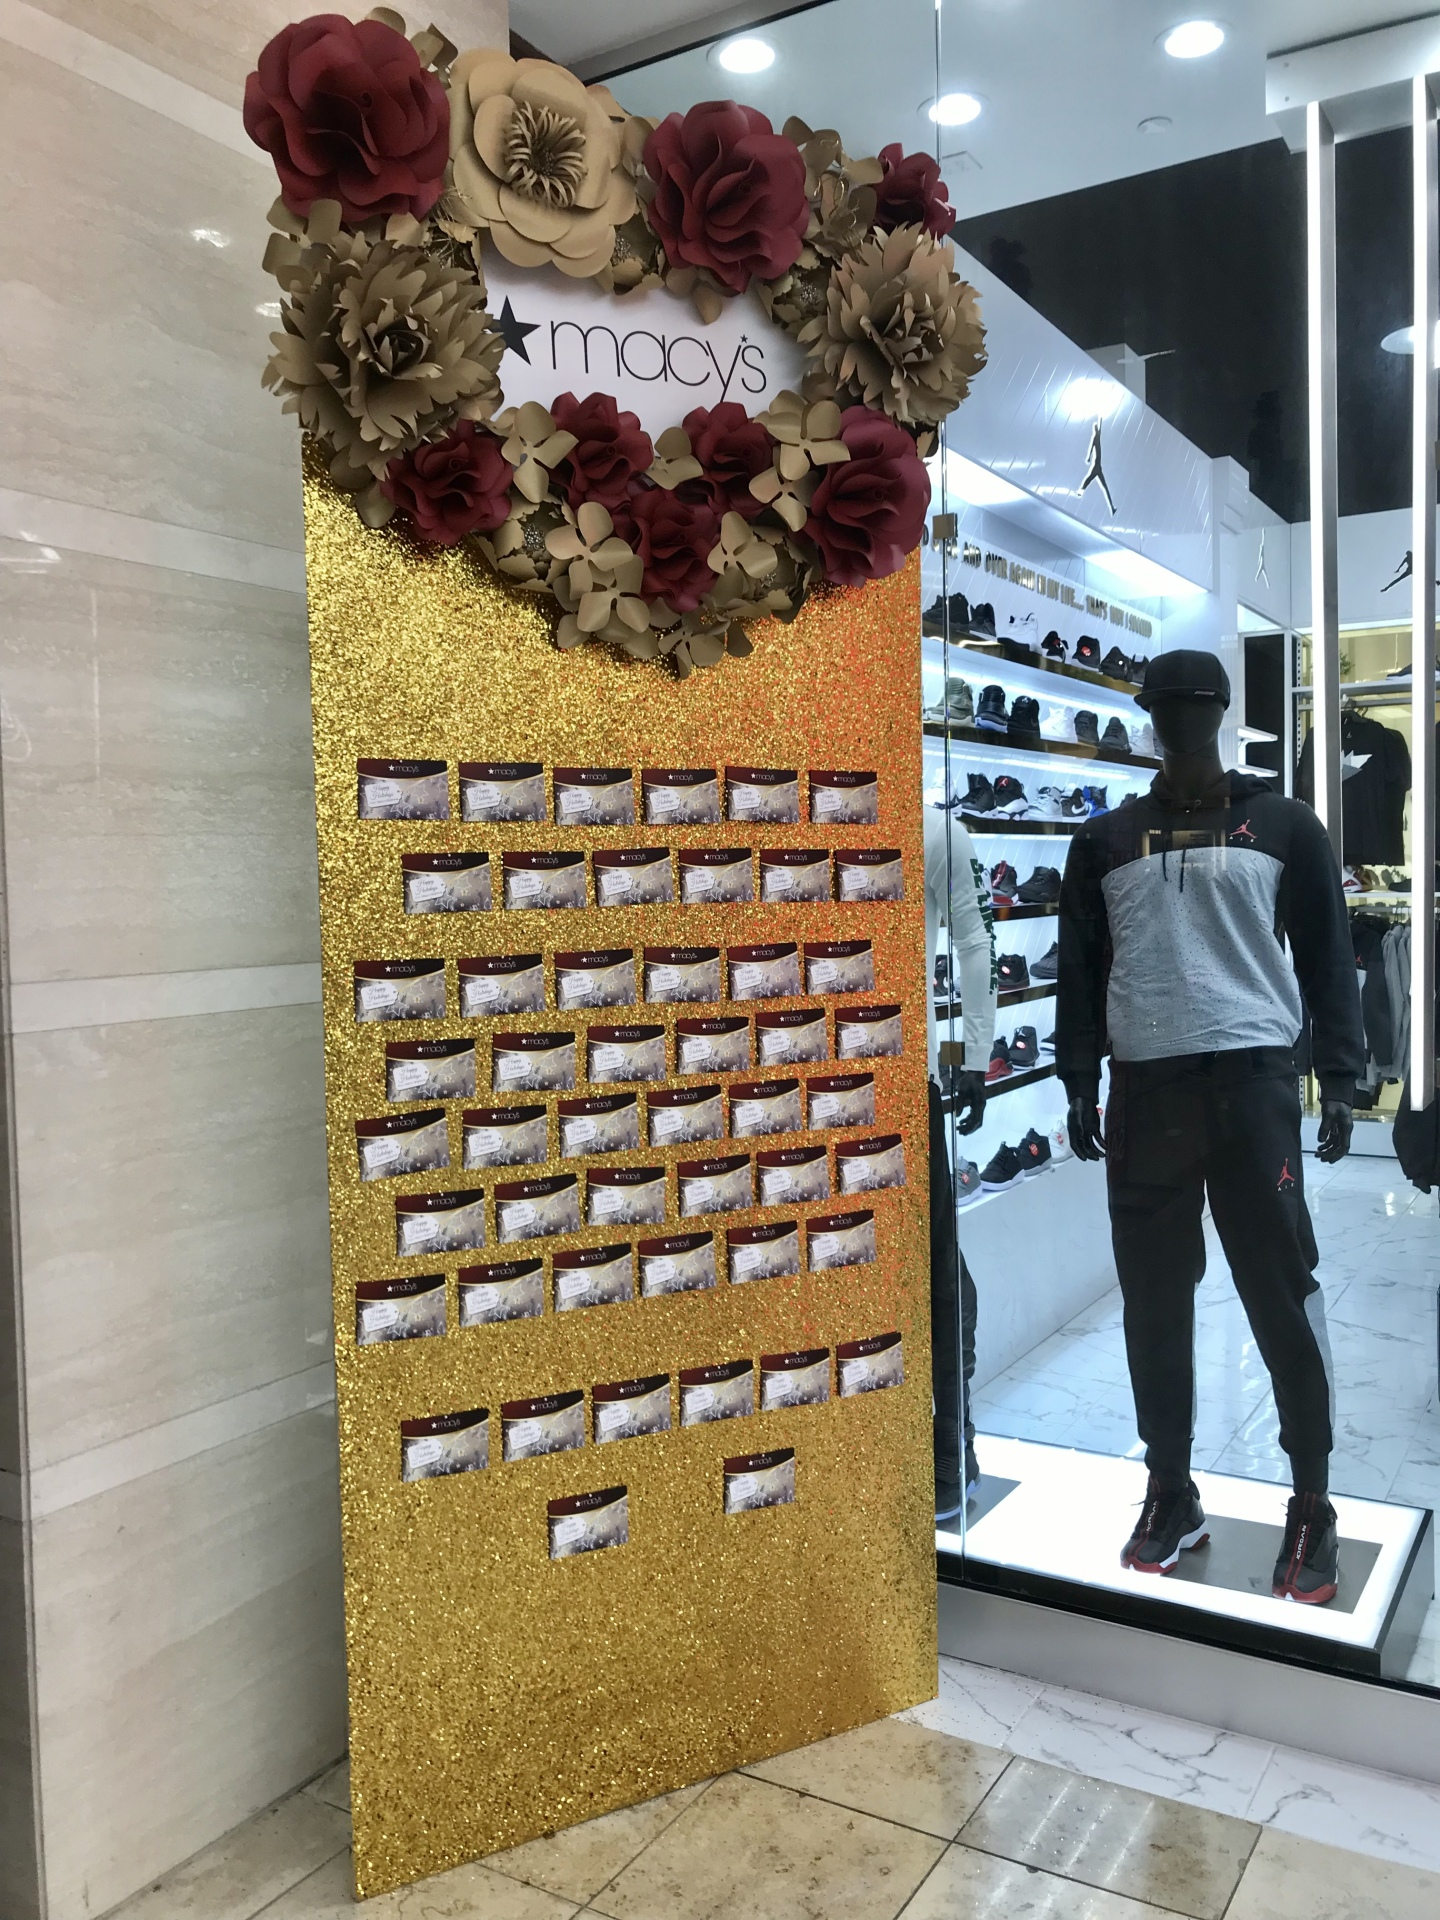 Corporate event, New Years decor, New Years backdrop, Paper Flowers, Paper flower installation, wedding backdrop, sweetheart table, quinceanera, HOUSTON Paper Flowers, Paper flower wall, Paper flower wall rental, event rentals, custom paper flower wall